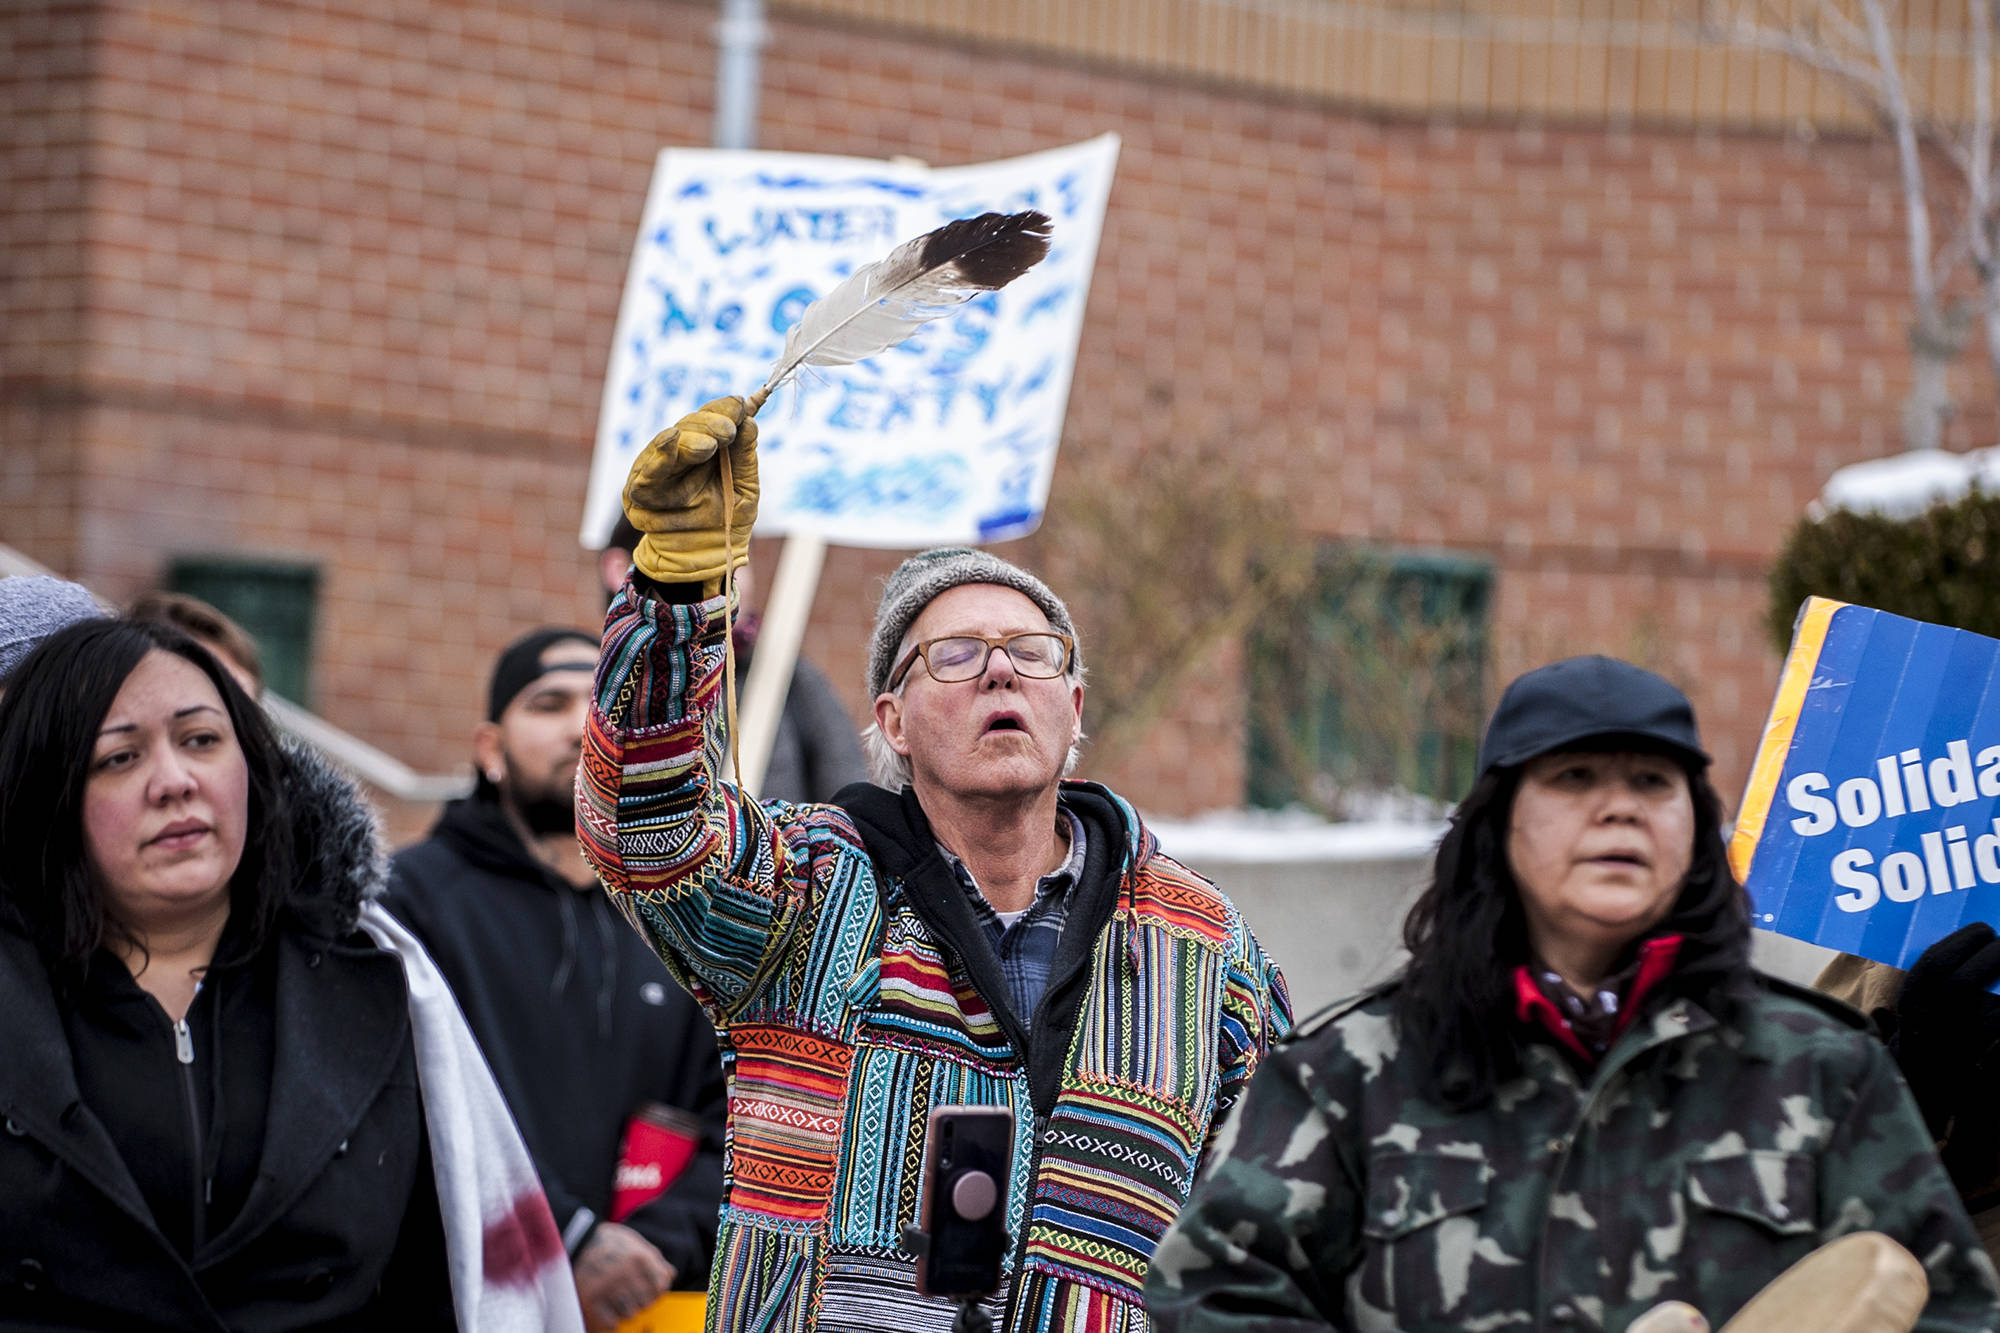 Hundreds gather outside the Kelowna Law Courts on Feb. 9 in solidarity with Wet'suwet'en First Nation in its fight against the Coastal Gaslink Pipeline. (Michael Rodriguez - Capital News)